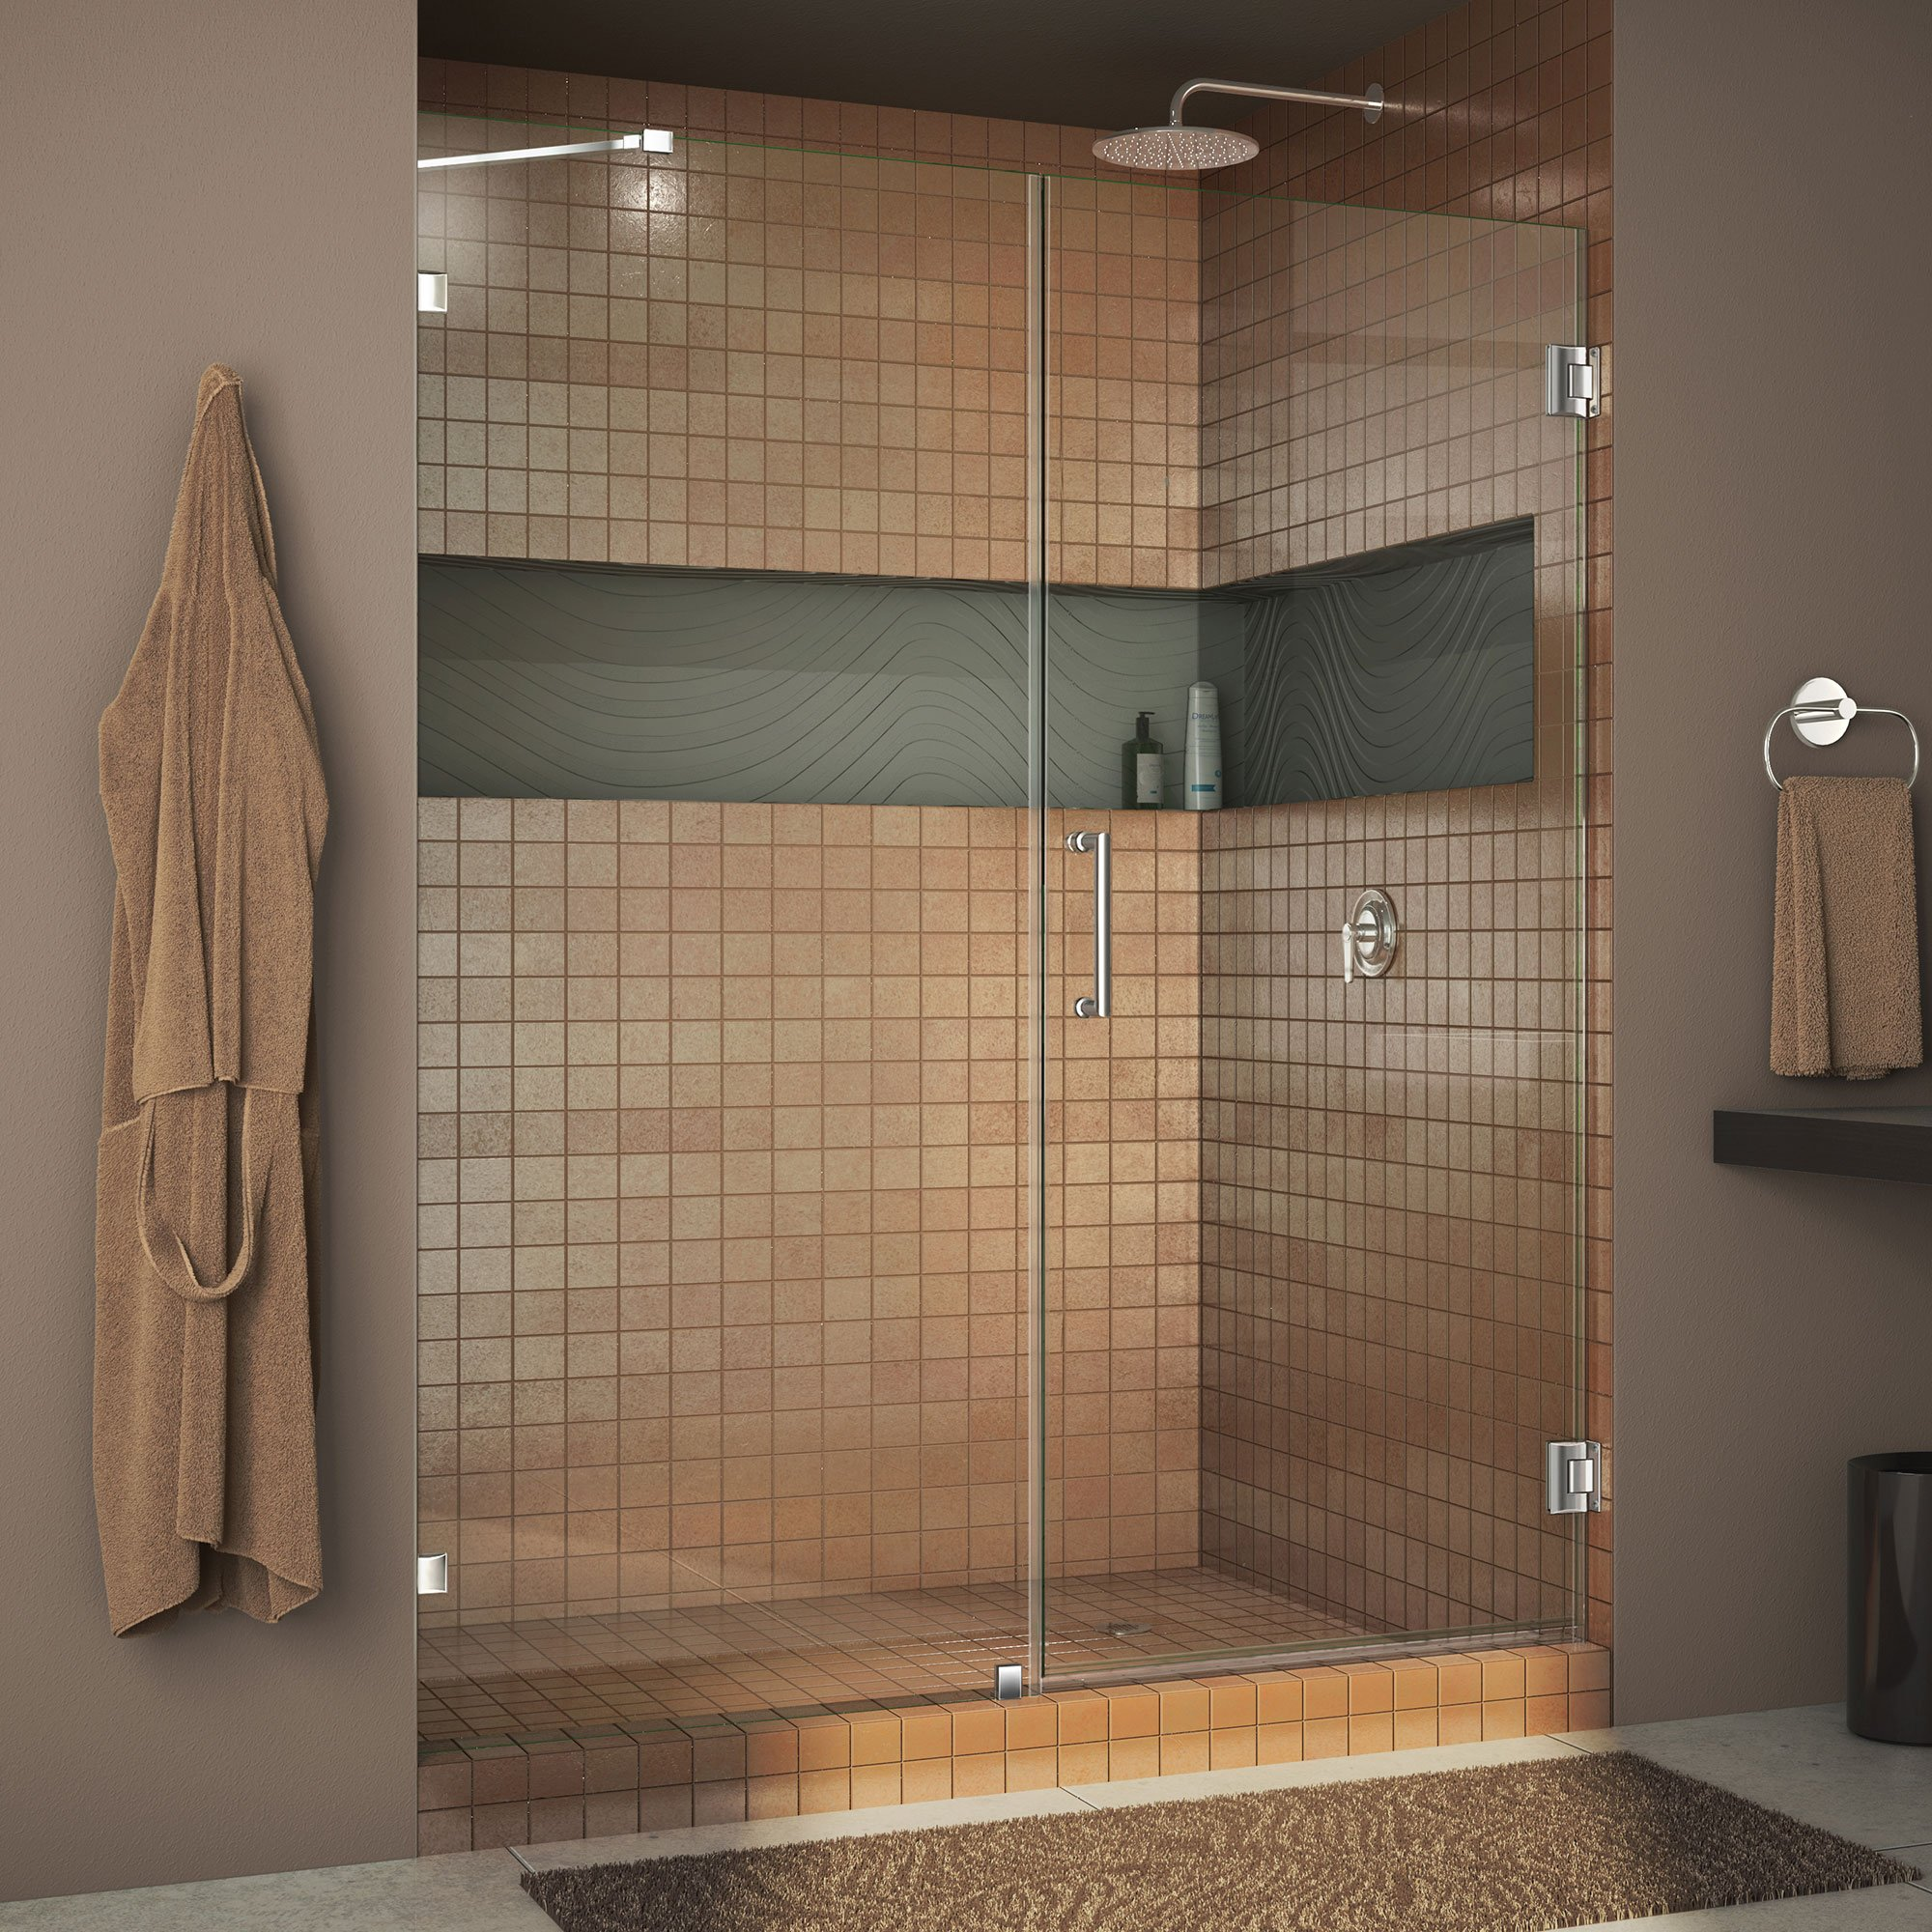 DreamLine Unidoor Lux 56 in. Width, Frameless Hinged Shower Door, 3/8'' Glass, Chrome Finish by DreamLine